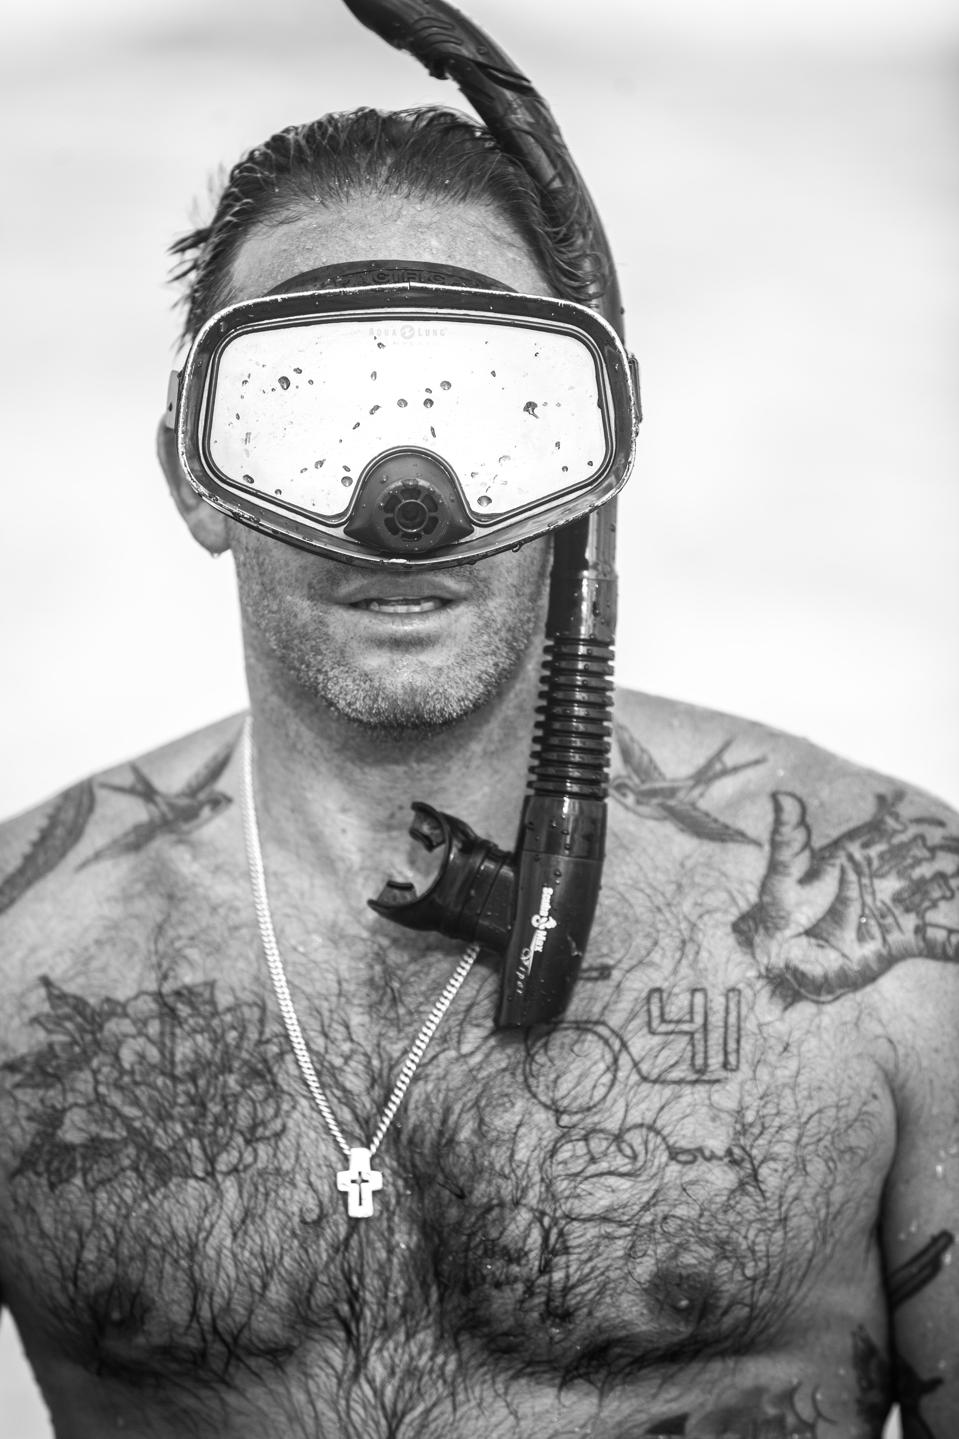 A portrait of the underwater photographer, Chris Leidy.